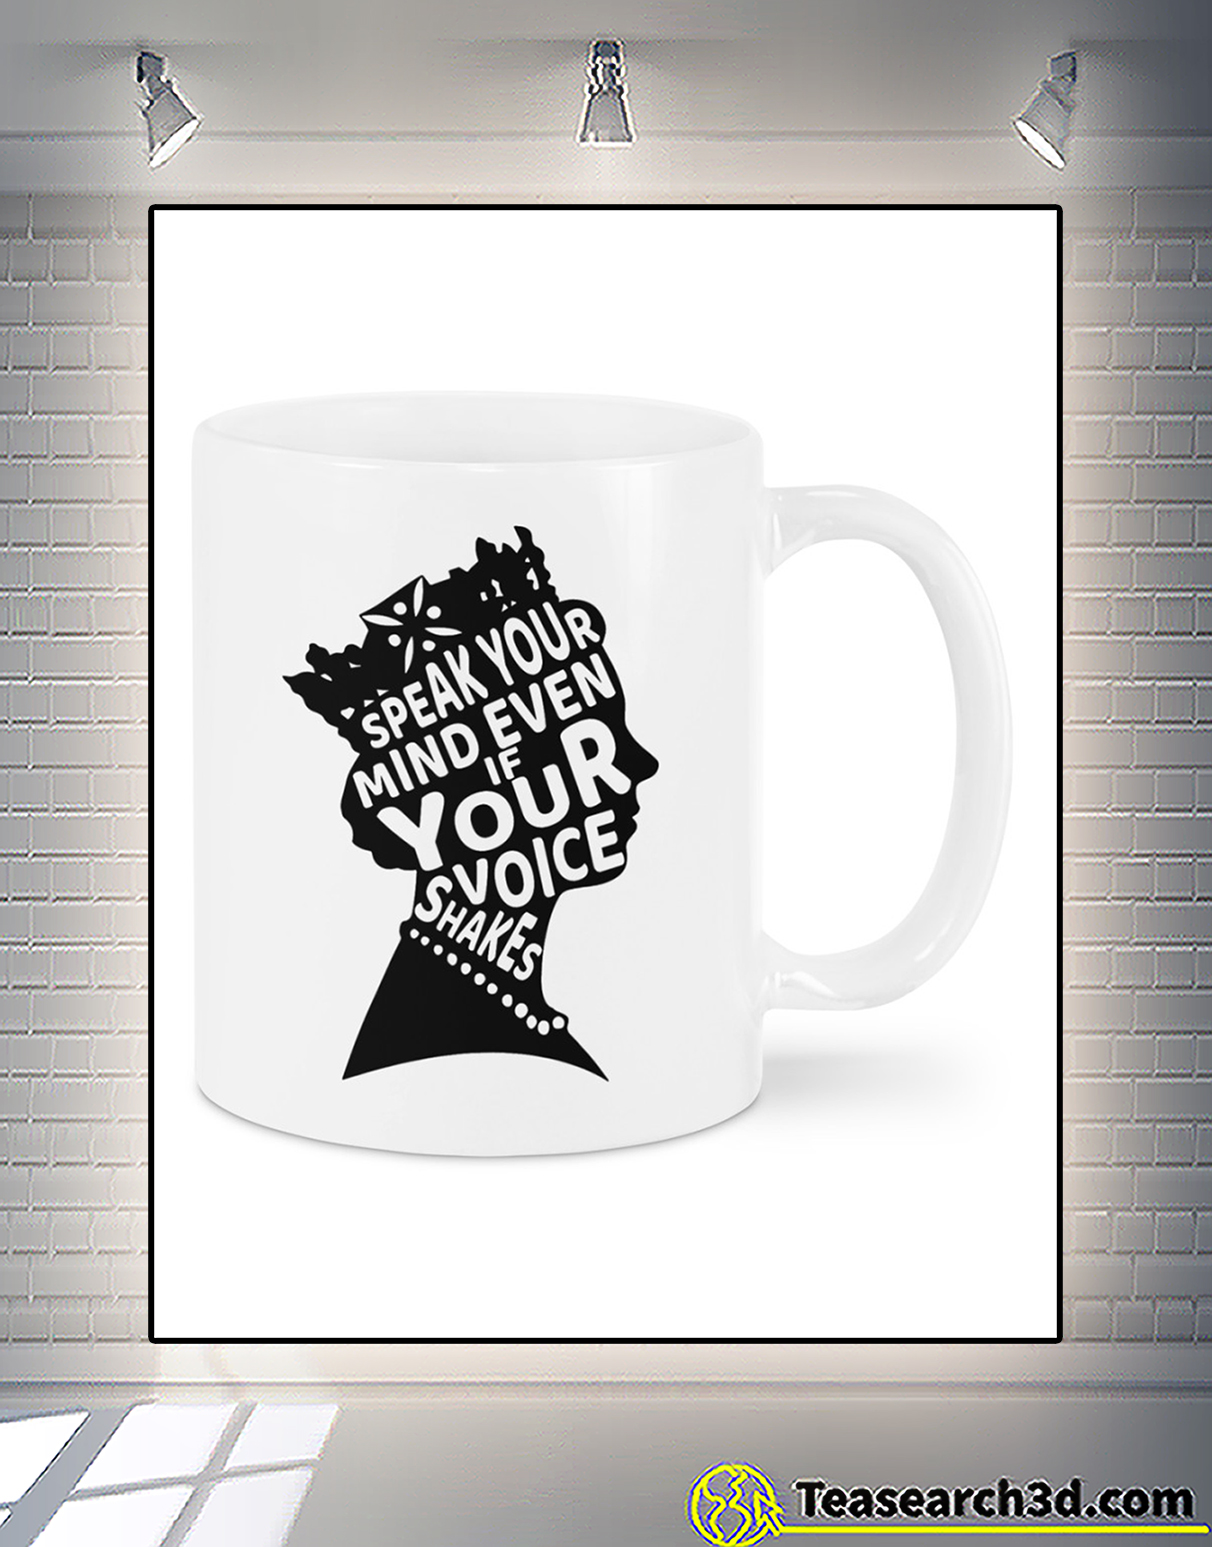 Speak your mind even if your voice shakes mug 2